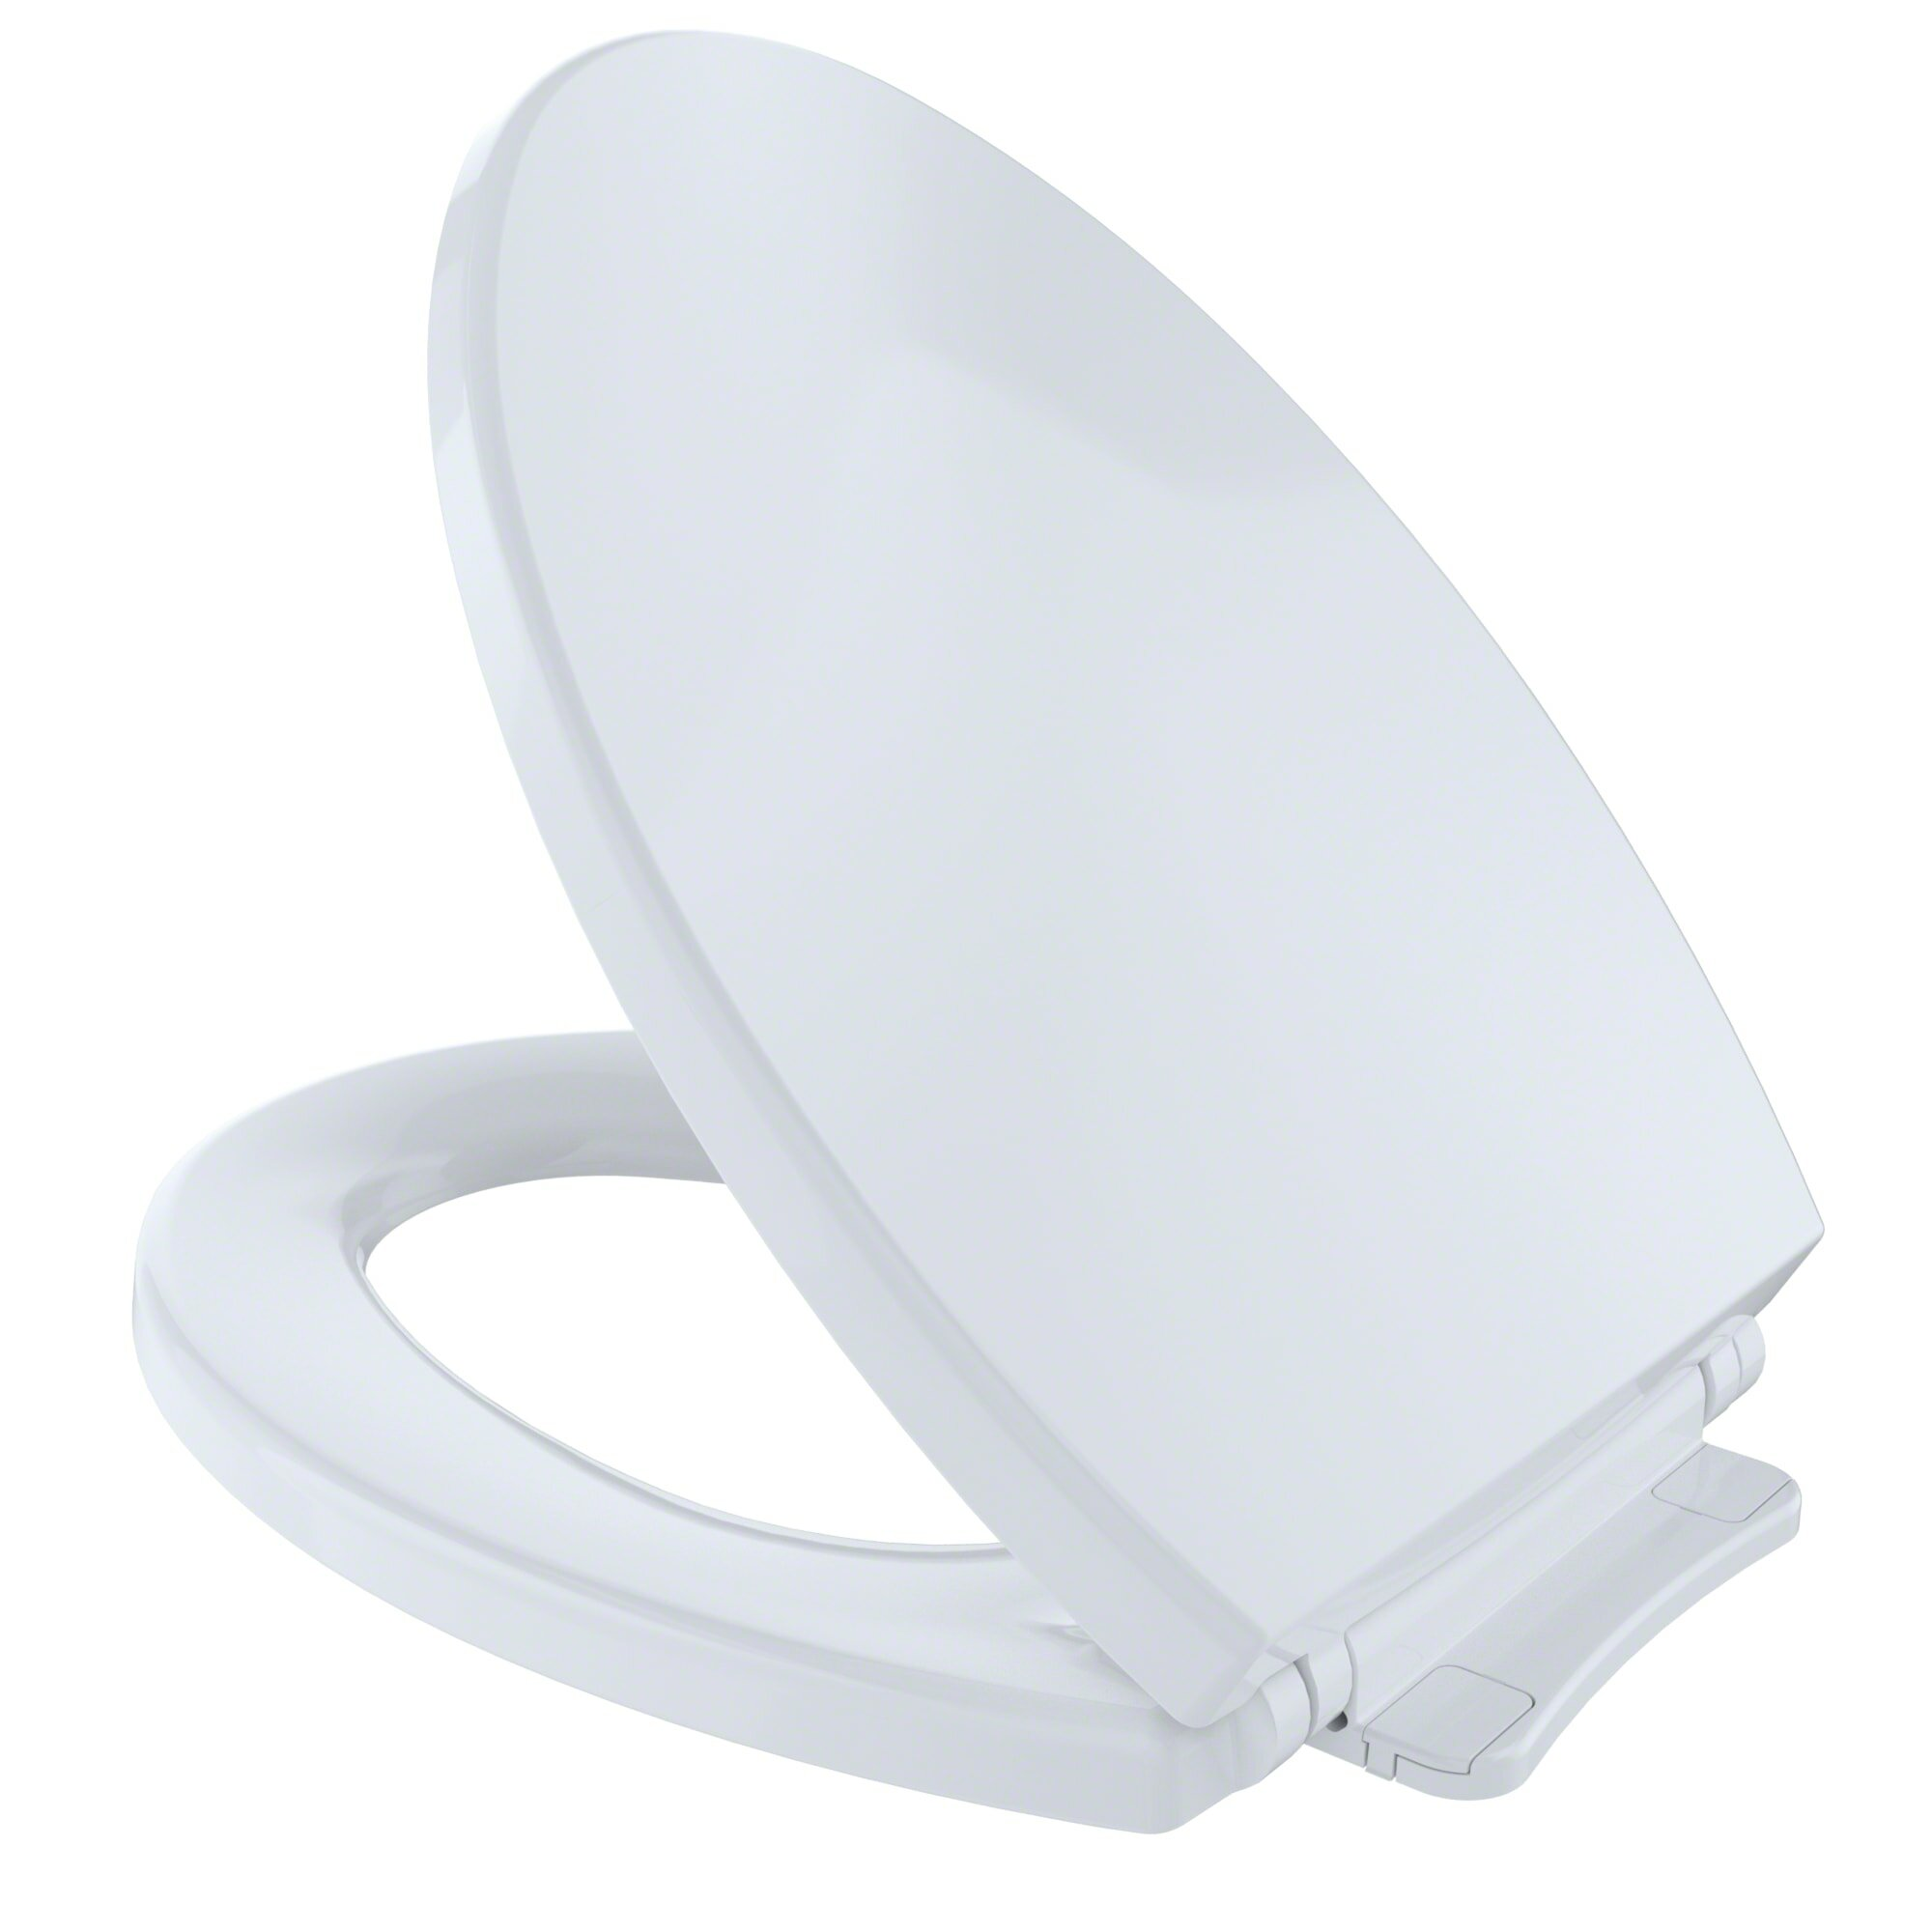 Toto Softclose Elongated Toilet Seat Amp Reviews Wayfair